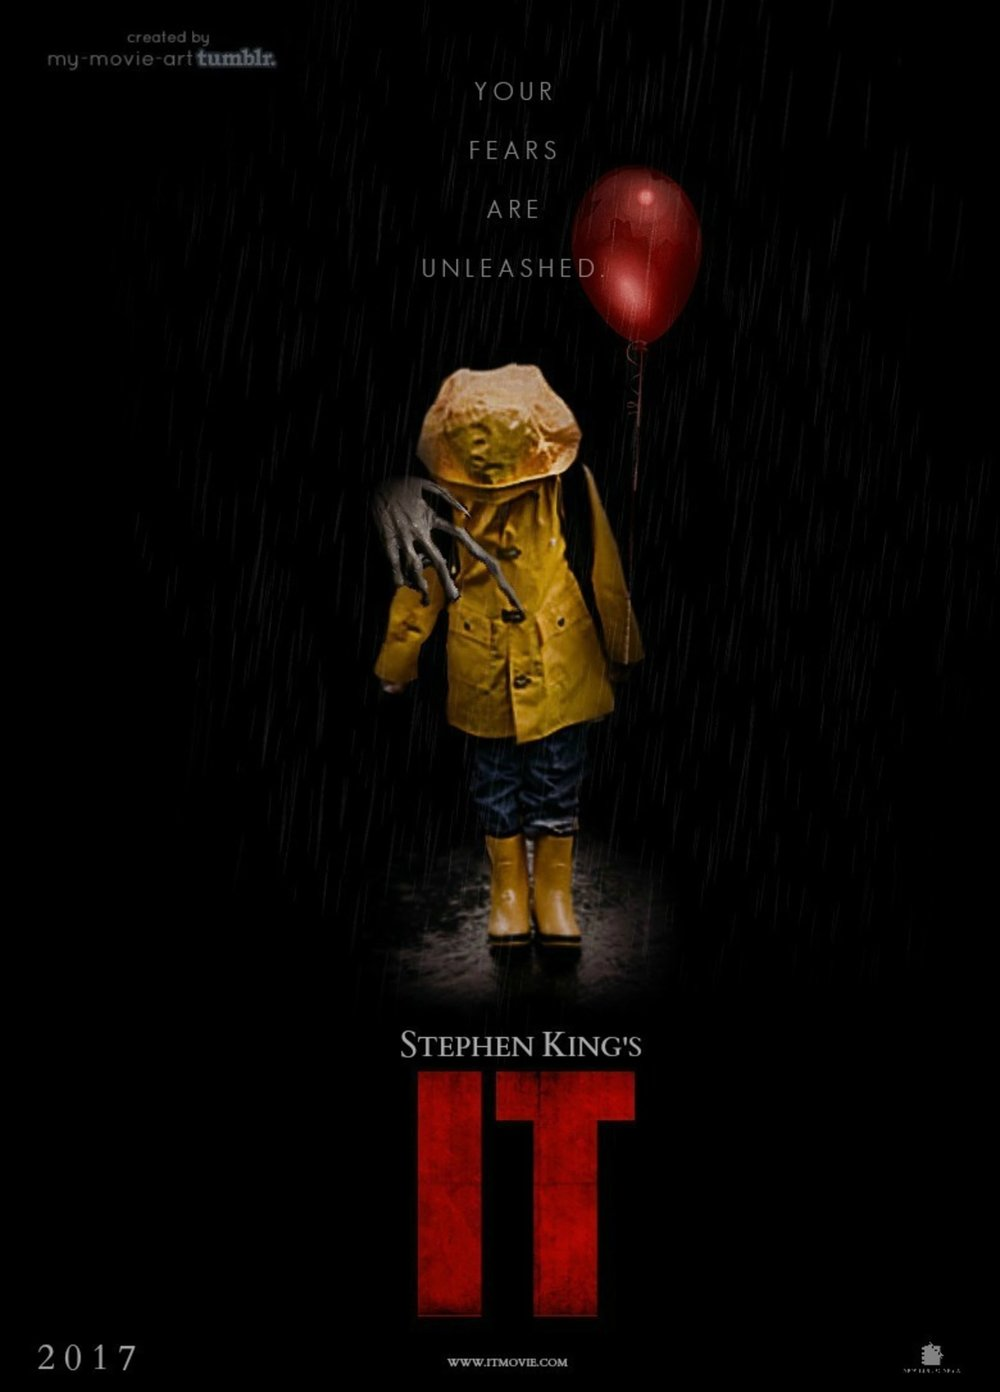 n a small town of Derry, Maine, seven children come face to face with life problems, bullies and a monster that takes the shape of a clown called Pennywise.